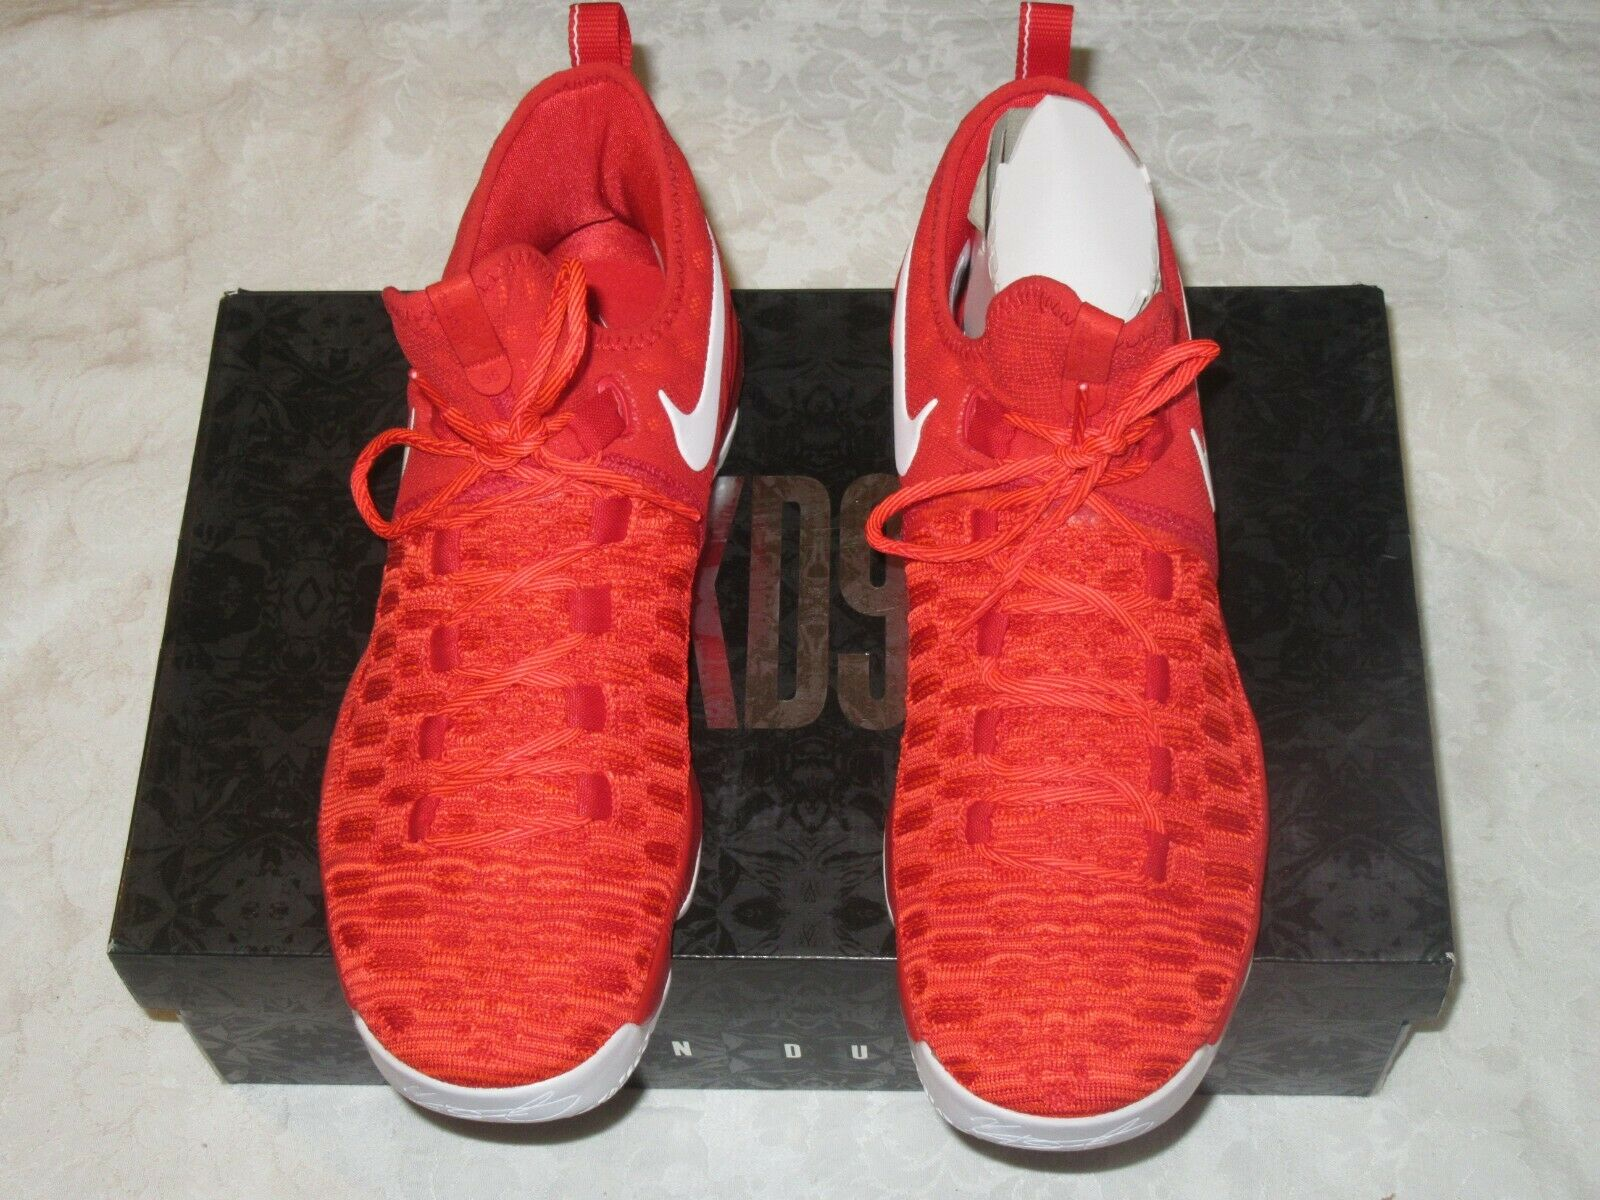 Nike Zoom KD 9 University Red White 843392 611 Men's US Size 11 Sneakers